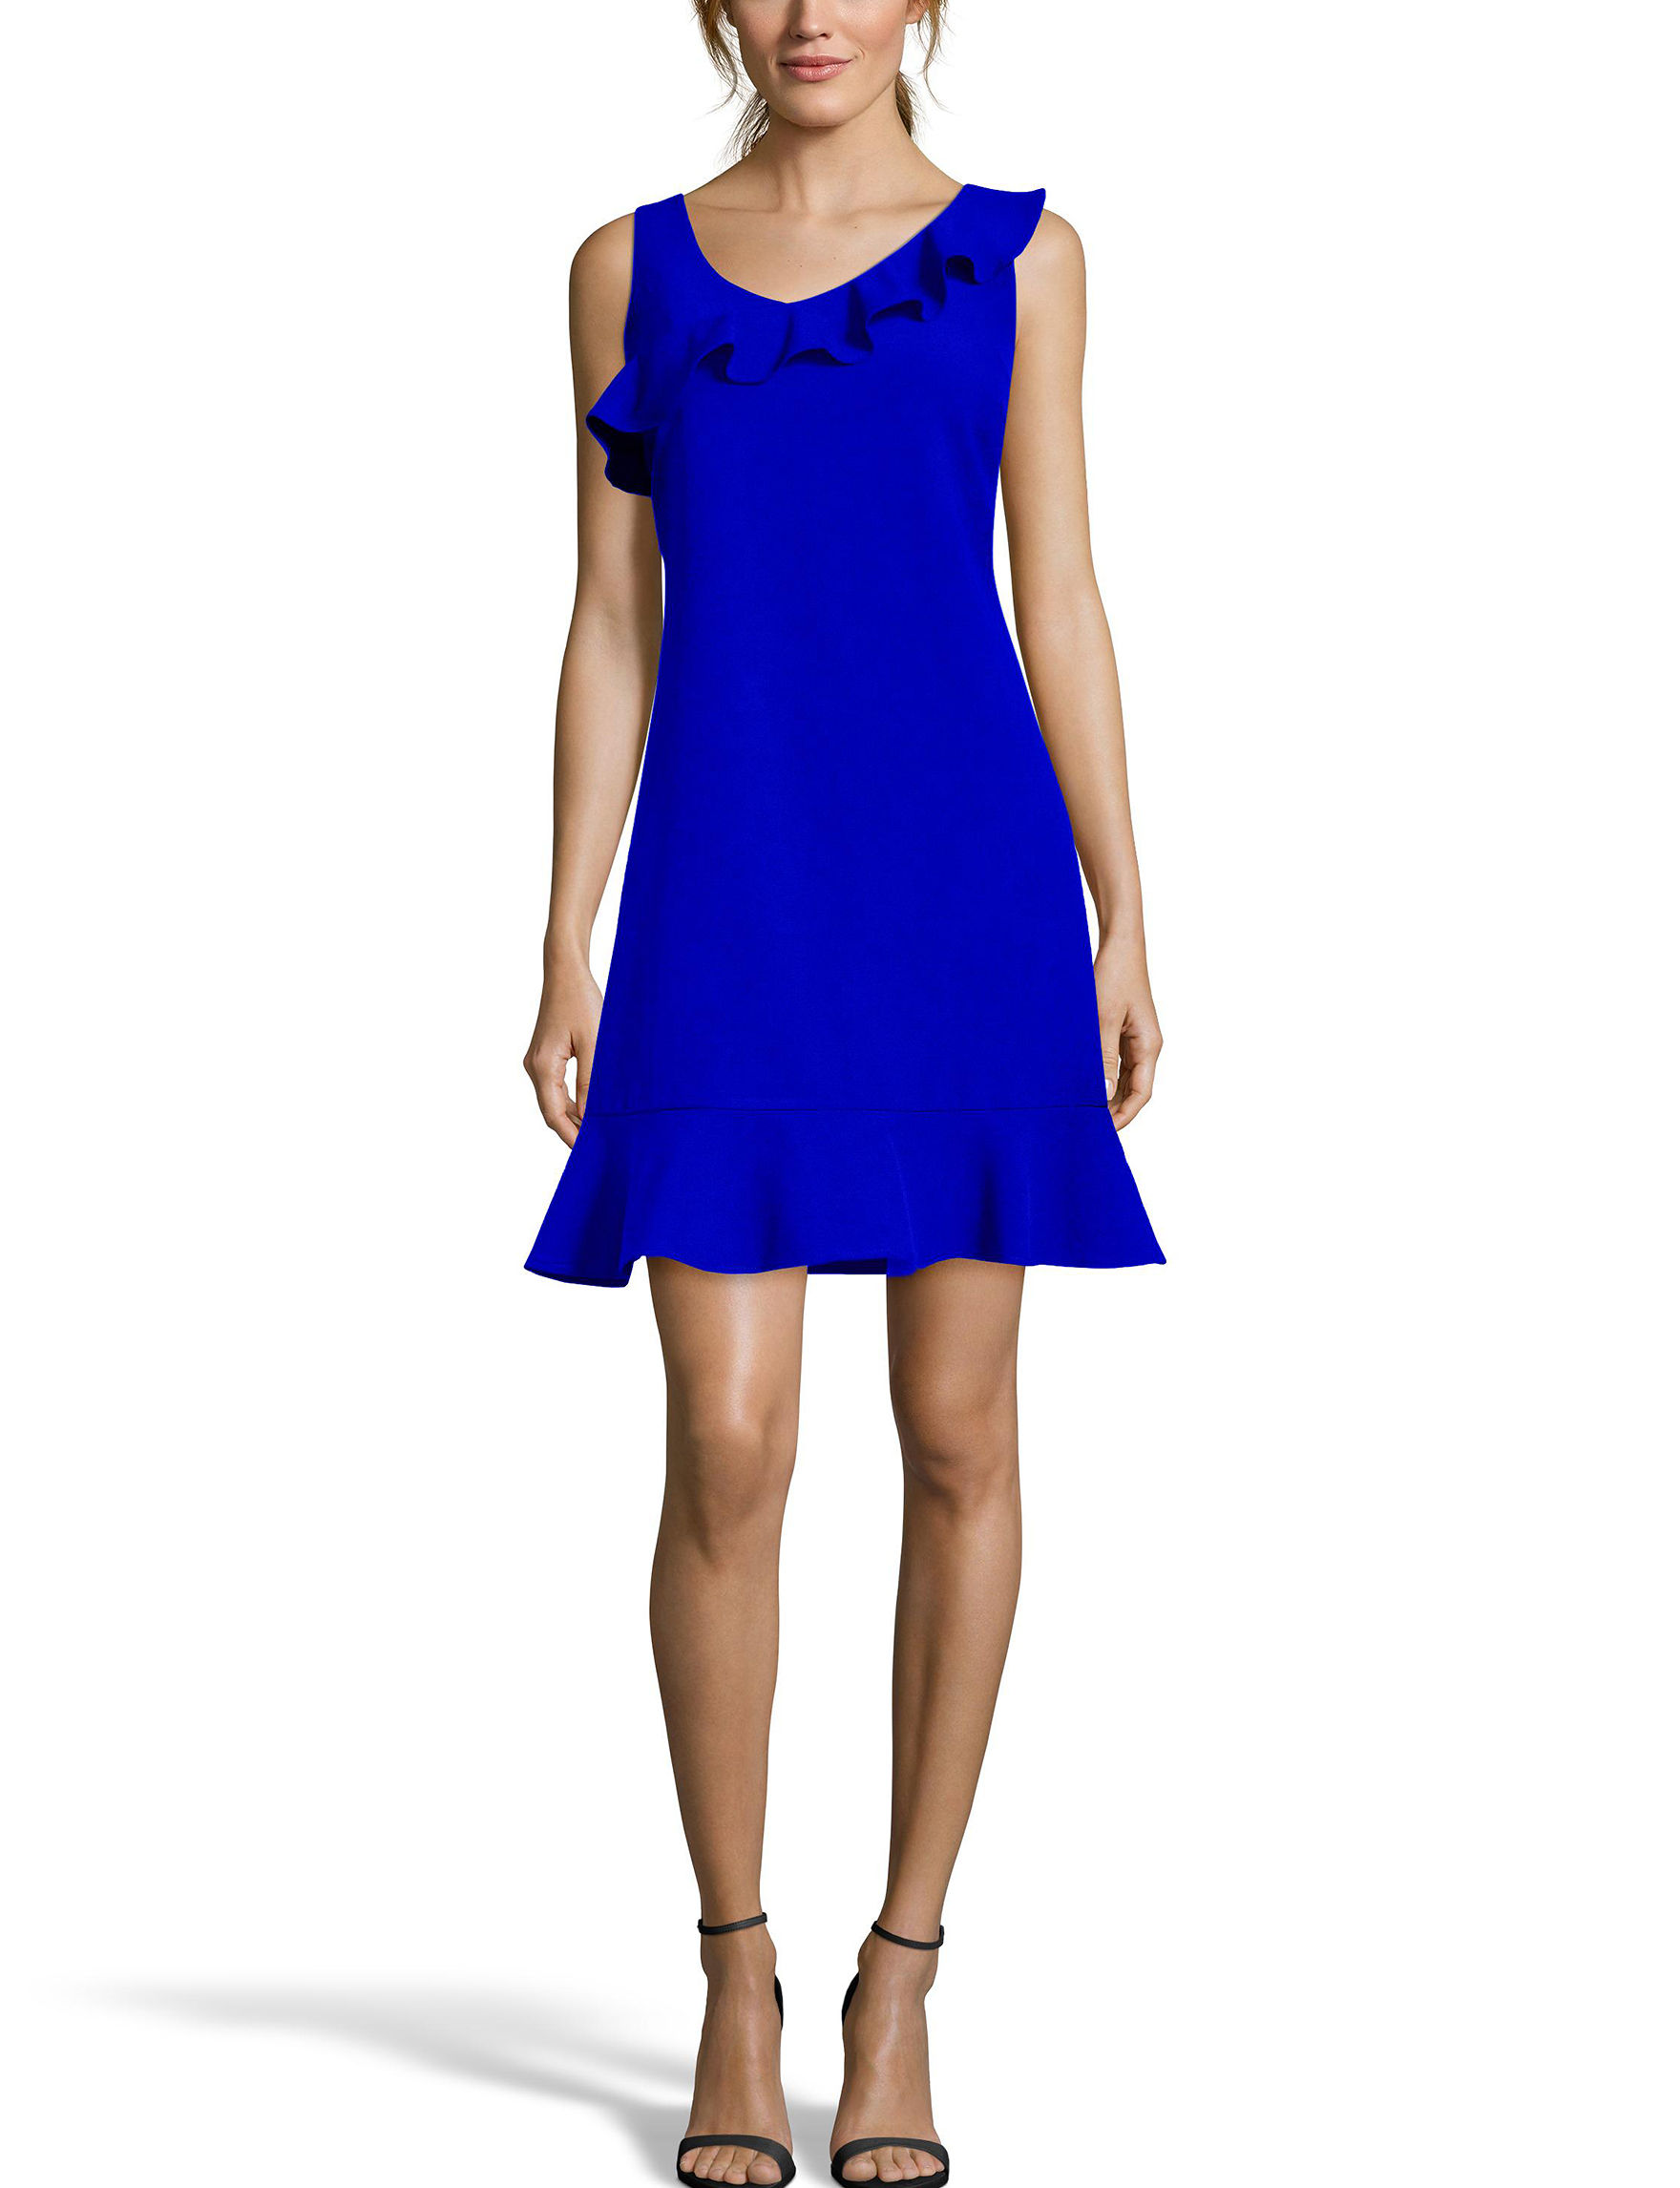 Nicole Miller Blue Everyday & Casual Shift Dresses